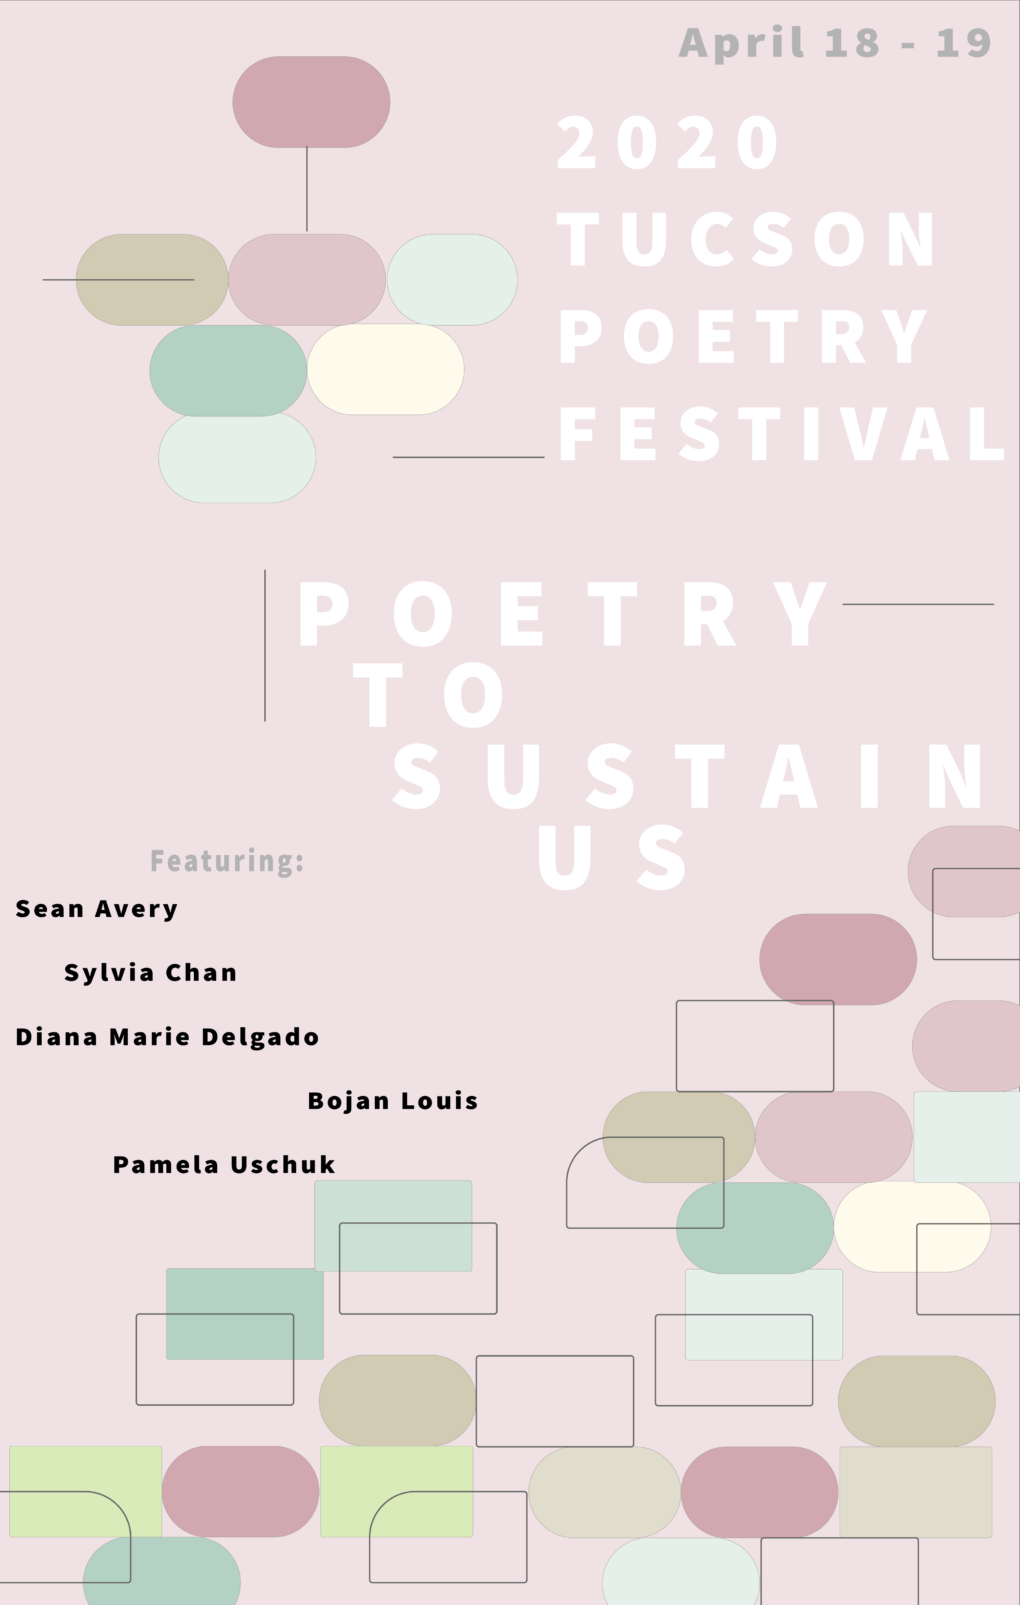 2020 Tucson Poetry Festival - Poetry to Sustain Us- Featuring Sean Avery, Sylvia Chan, Diana Marie Delgado, Bojan Louis, Pamela Uschuk